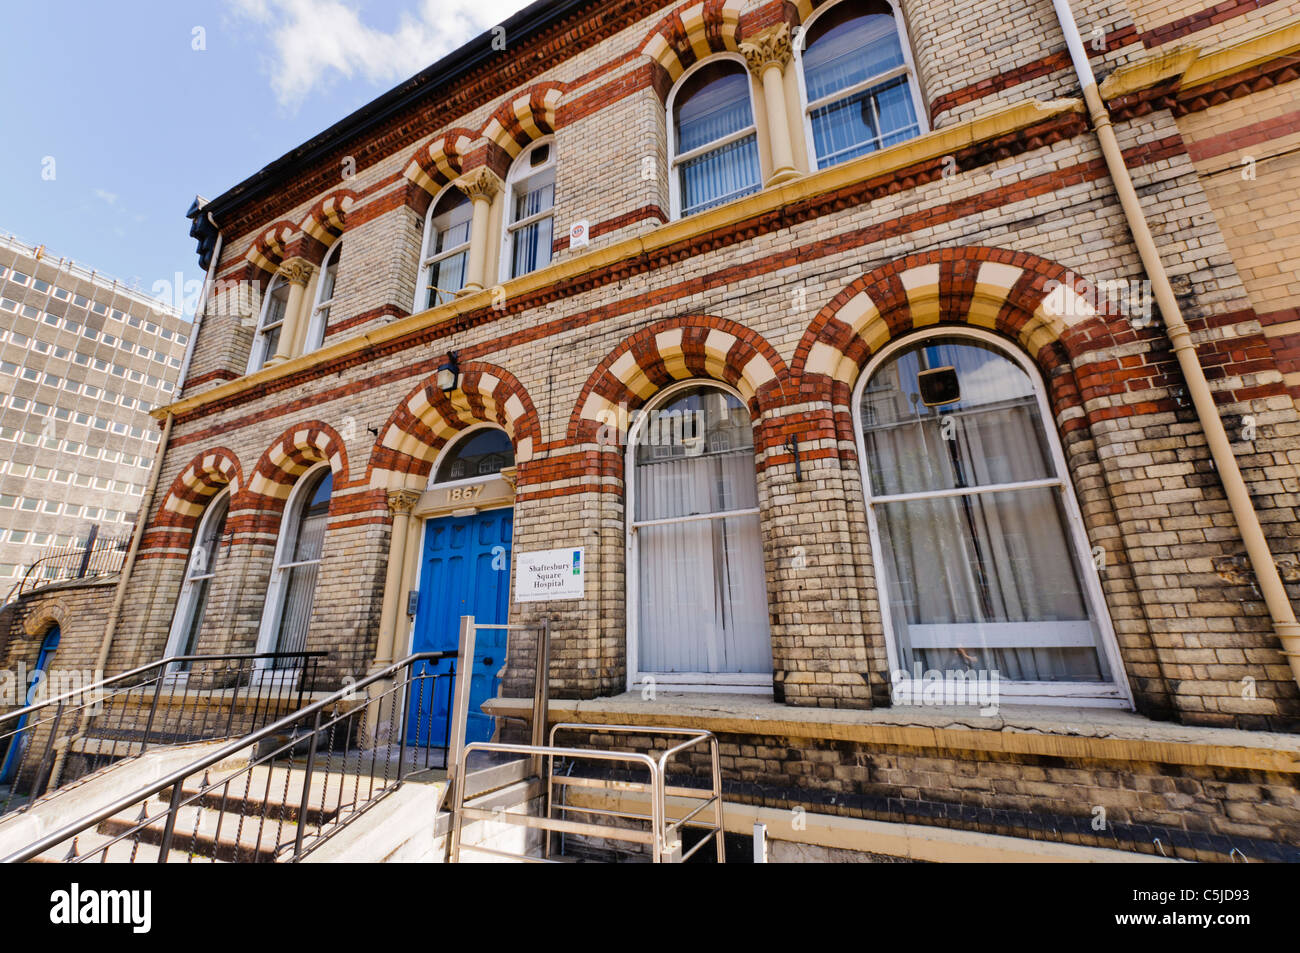 The Shaftesbury Hospital, Belfast, specialising in alcohol and drug addiction and dependency - Stock Image